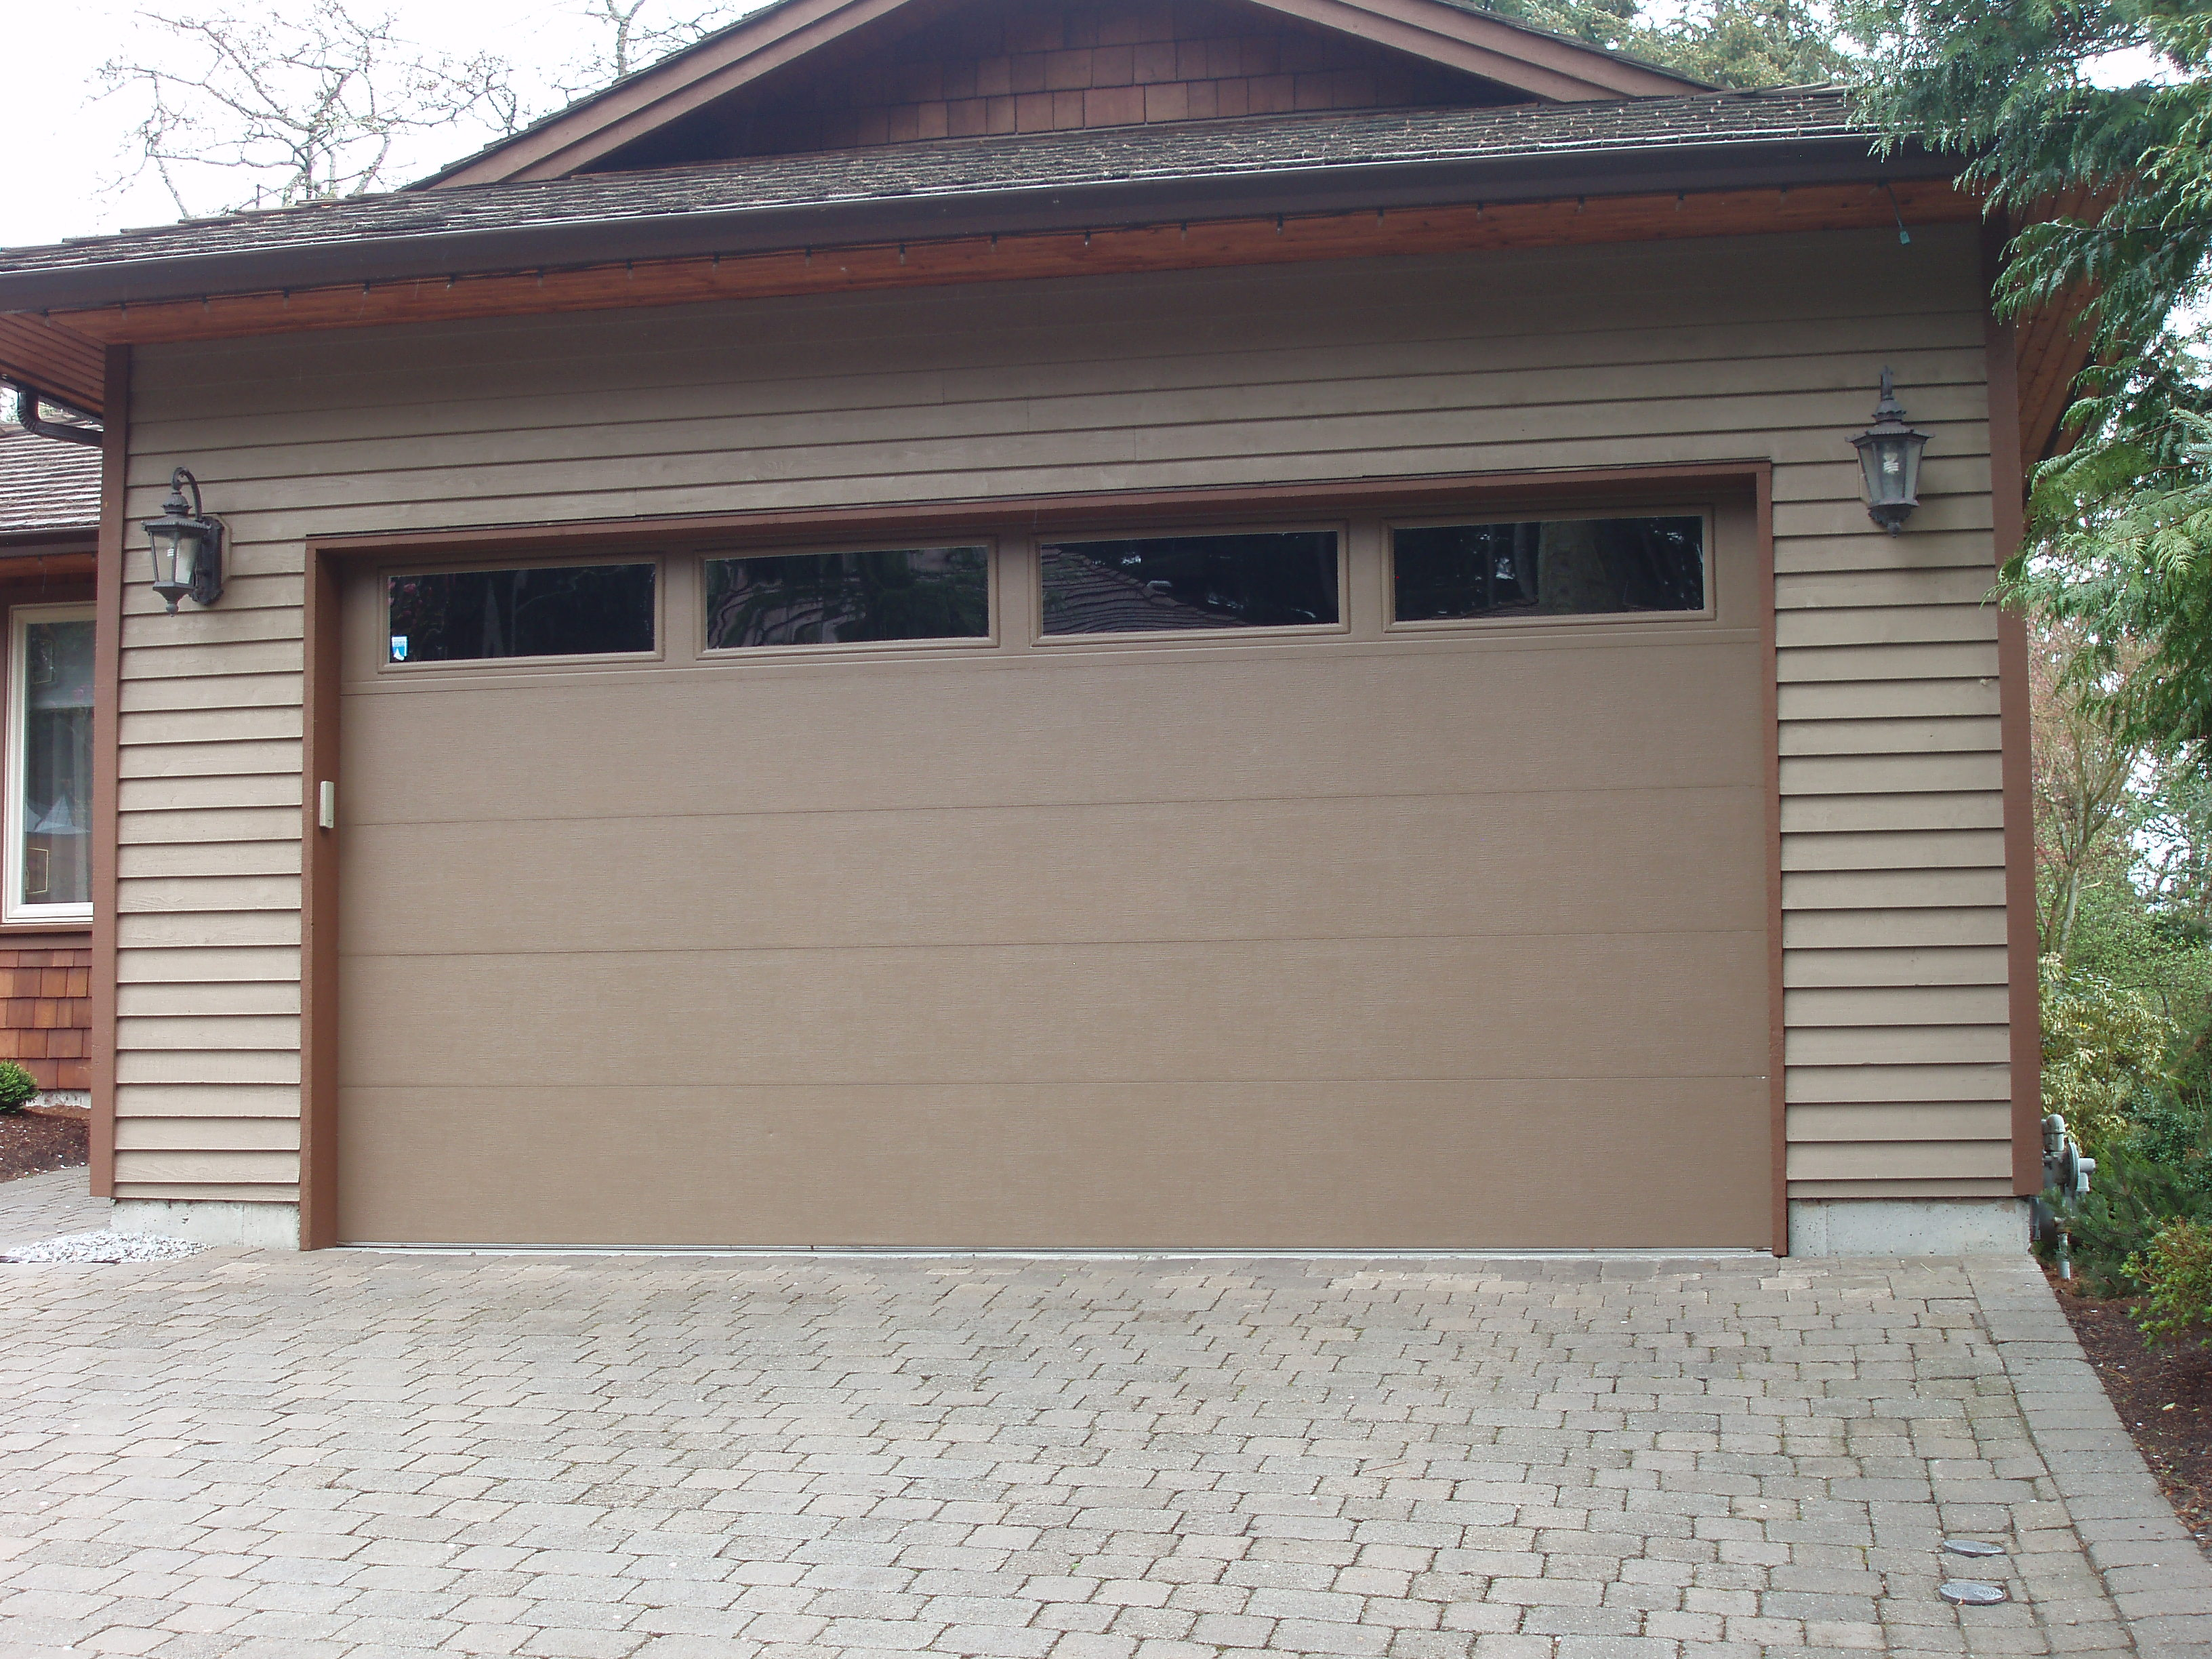 Clopay insulated garage doors examples ideas pictures Clopay garage door colors